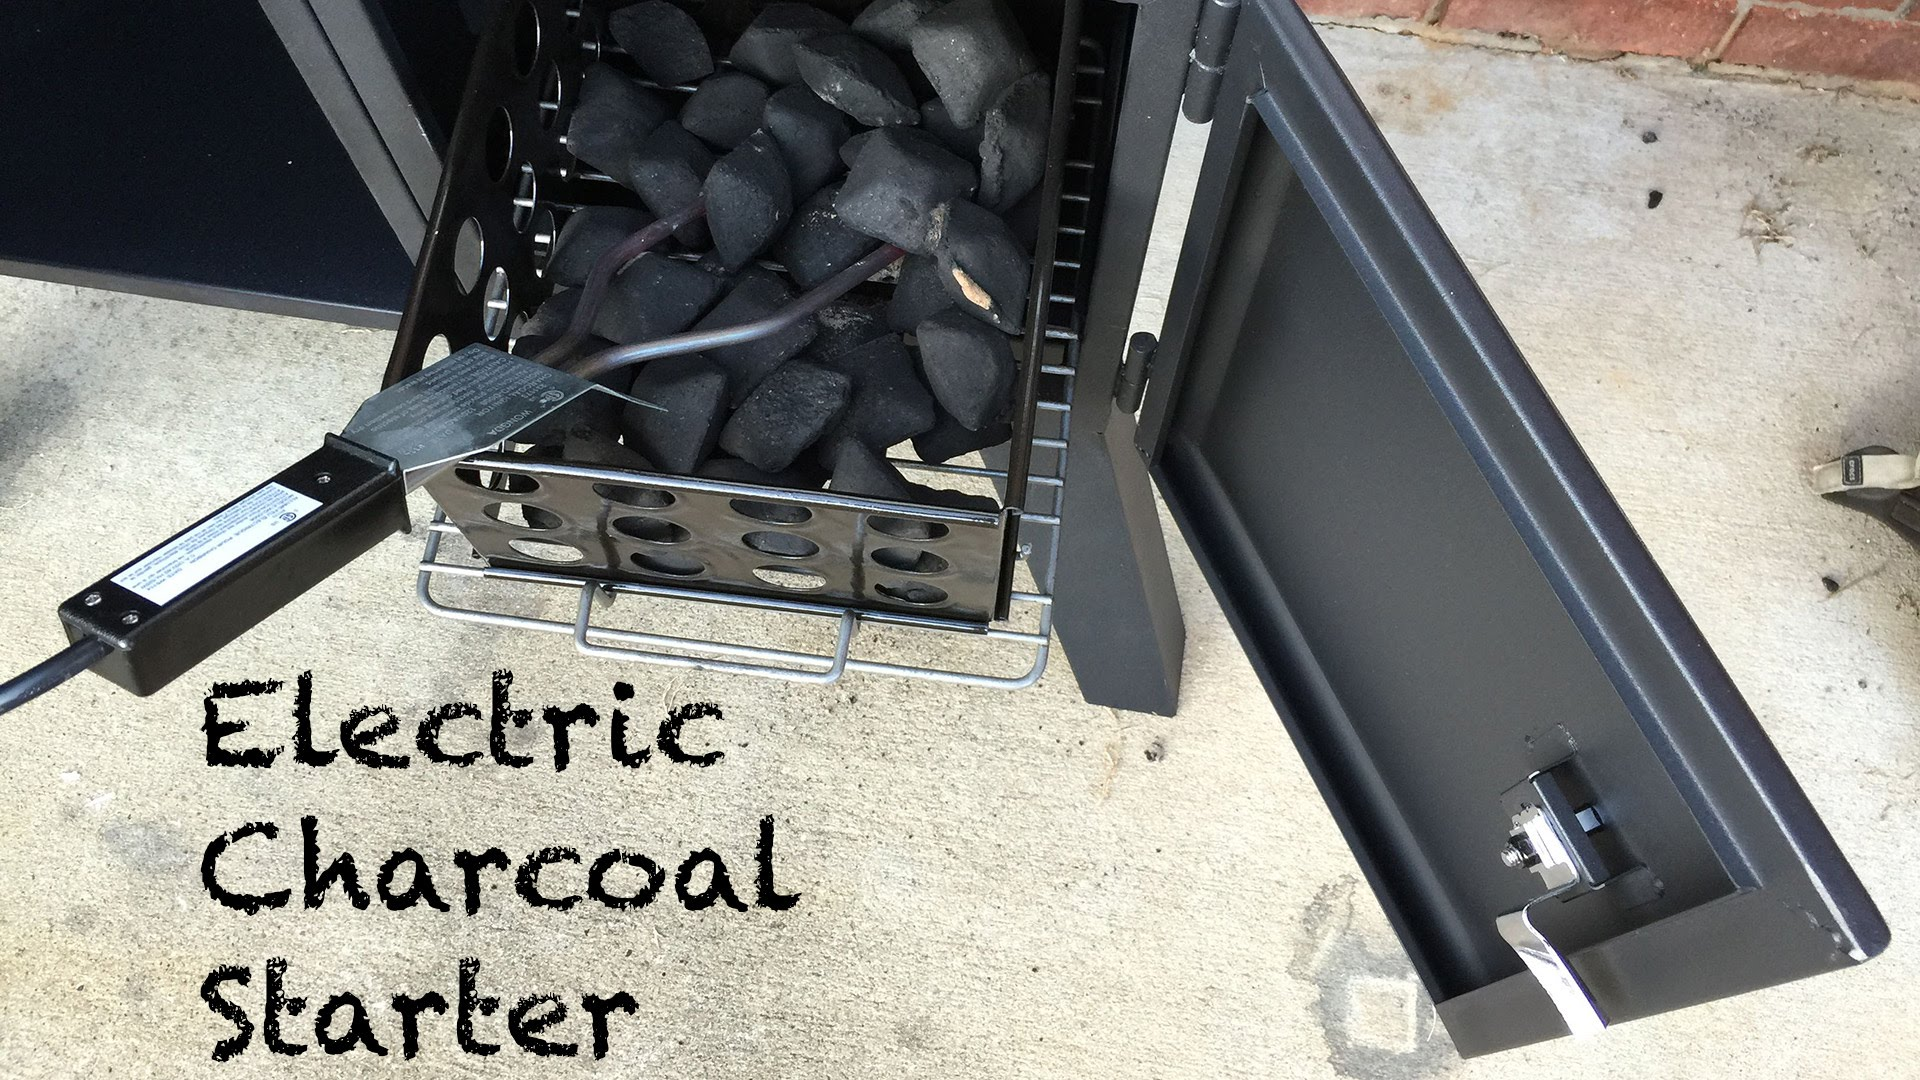 How To Use An Electric Charcoal Starter Outdoorfeeds